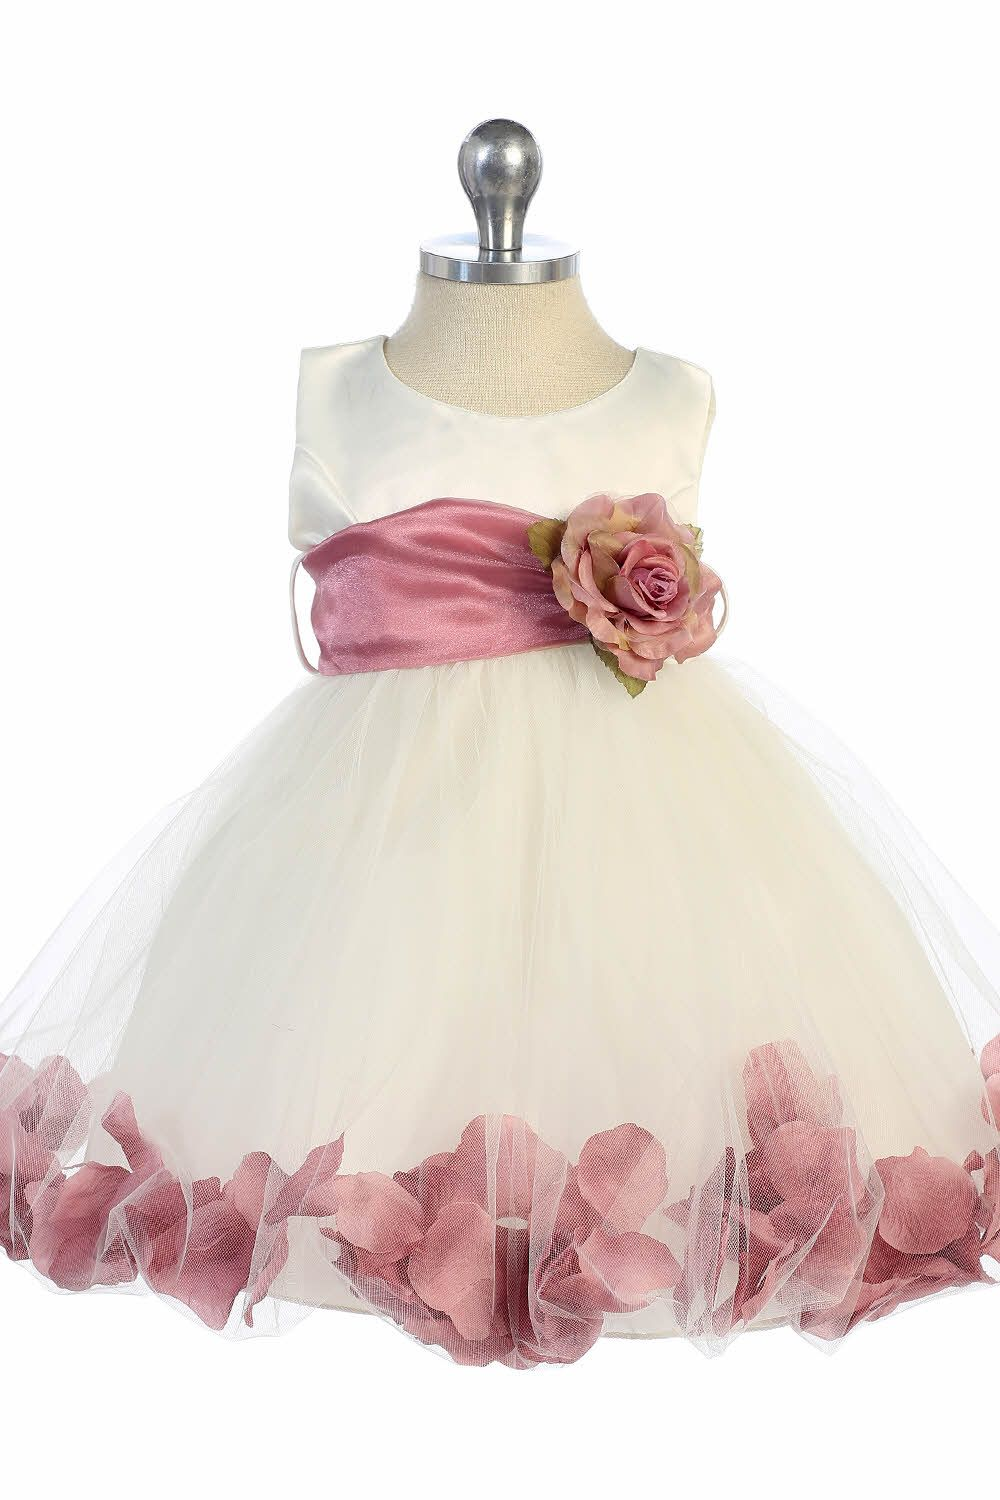 Ivory/Mauve Satin & Tulle Infant Flower Girl Dress with Petals ...